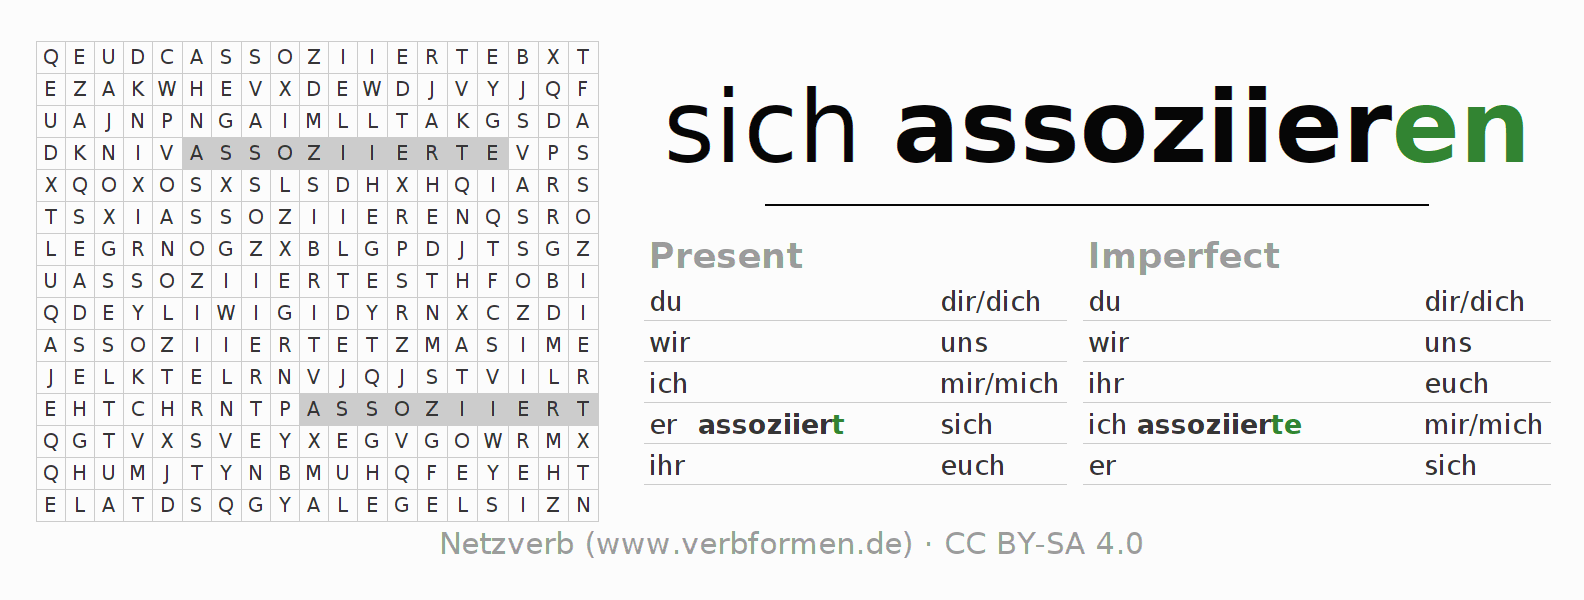 Word search puzzle for the conjugation of the verb sich assoziieren